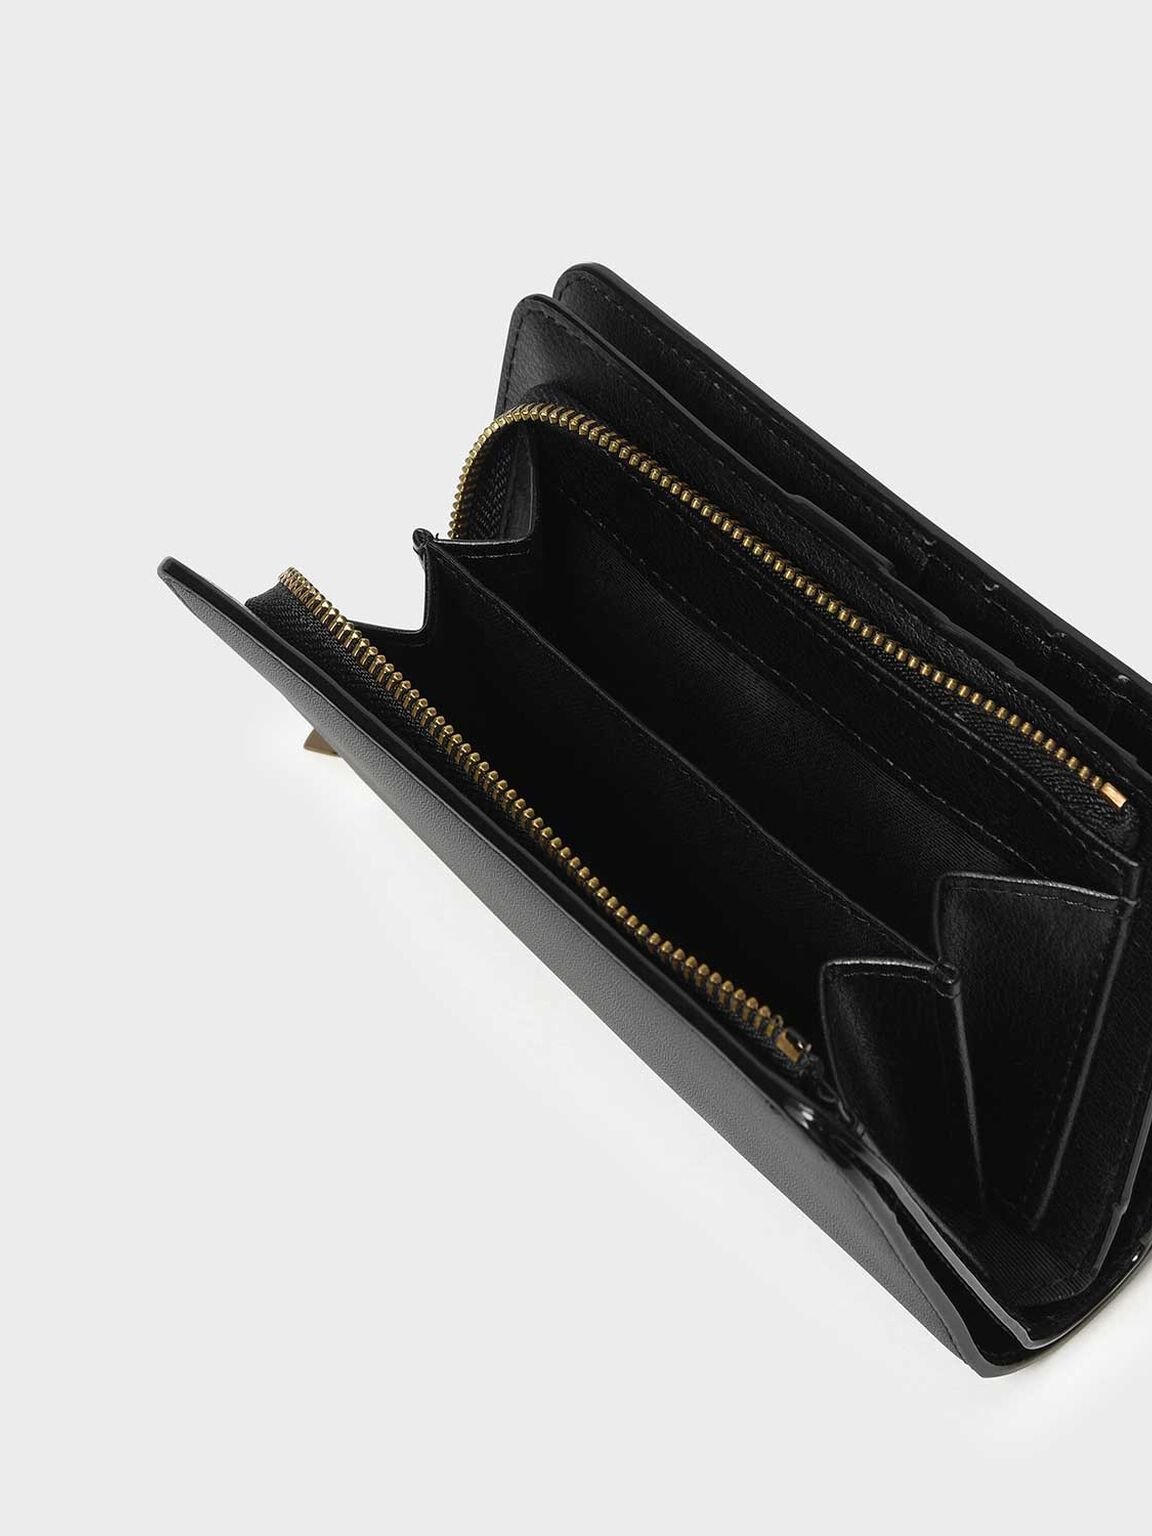 Classic Zipped Wallet, Black, hi-res